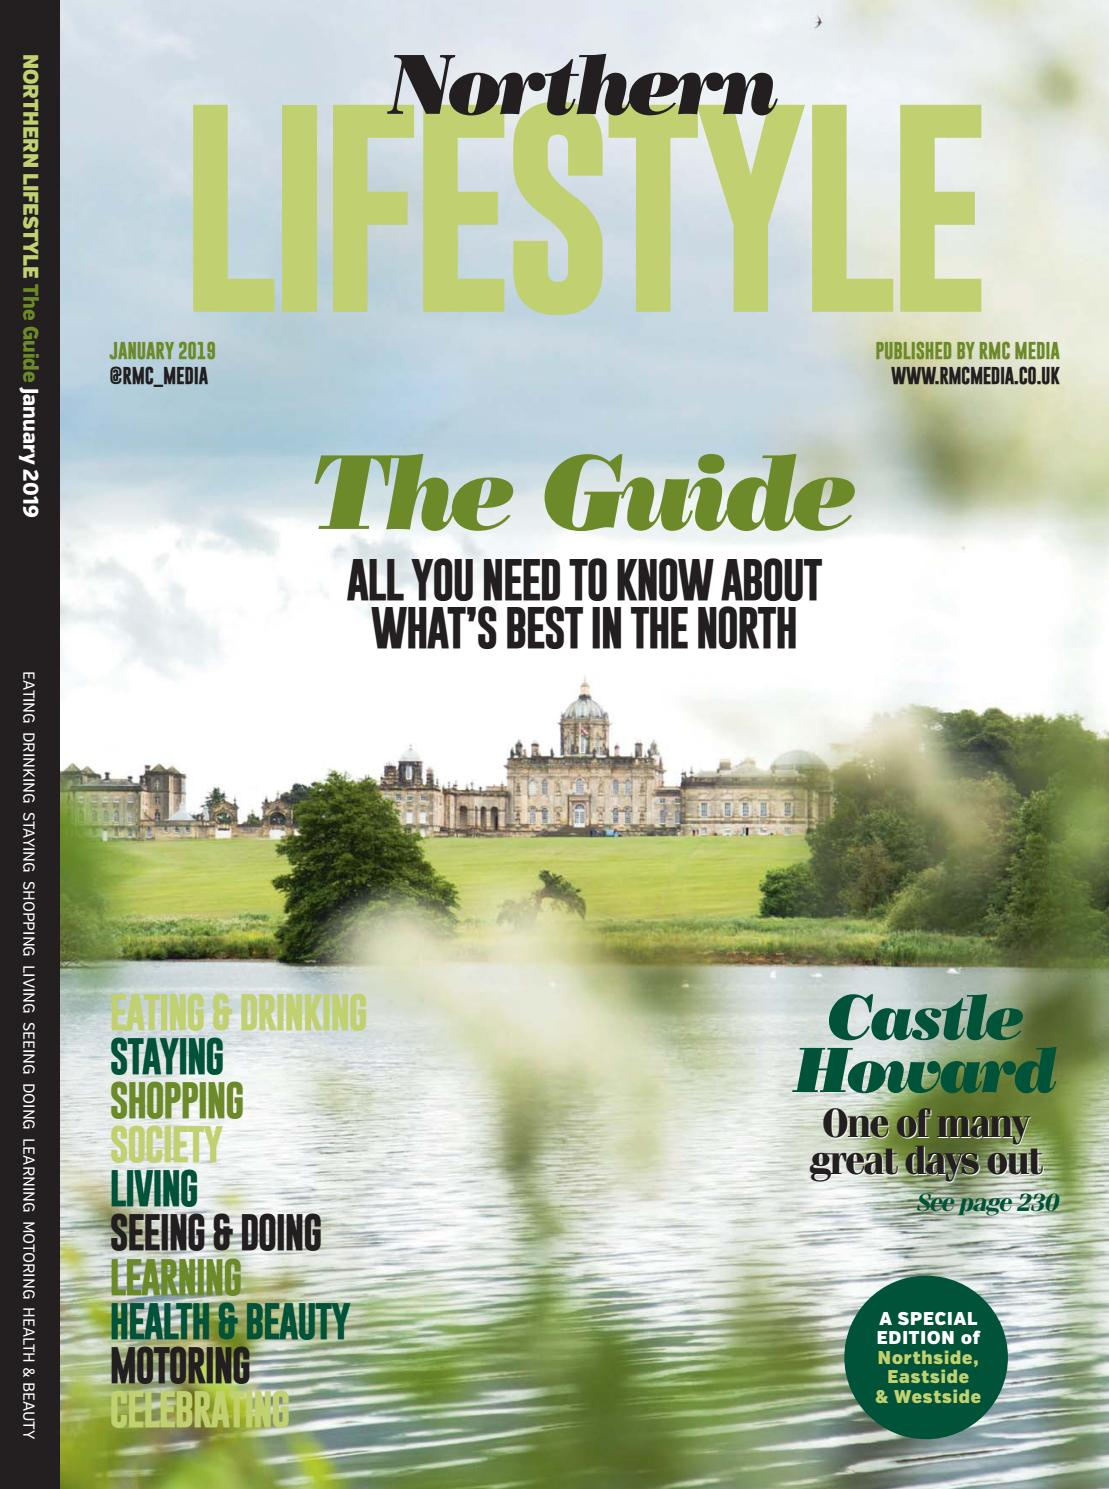 4791a4d95a Northern Lifestyle (Northside) January 2019 by RMC Media - issuu